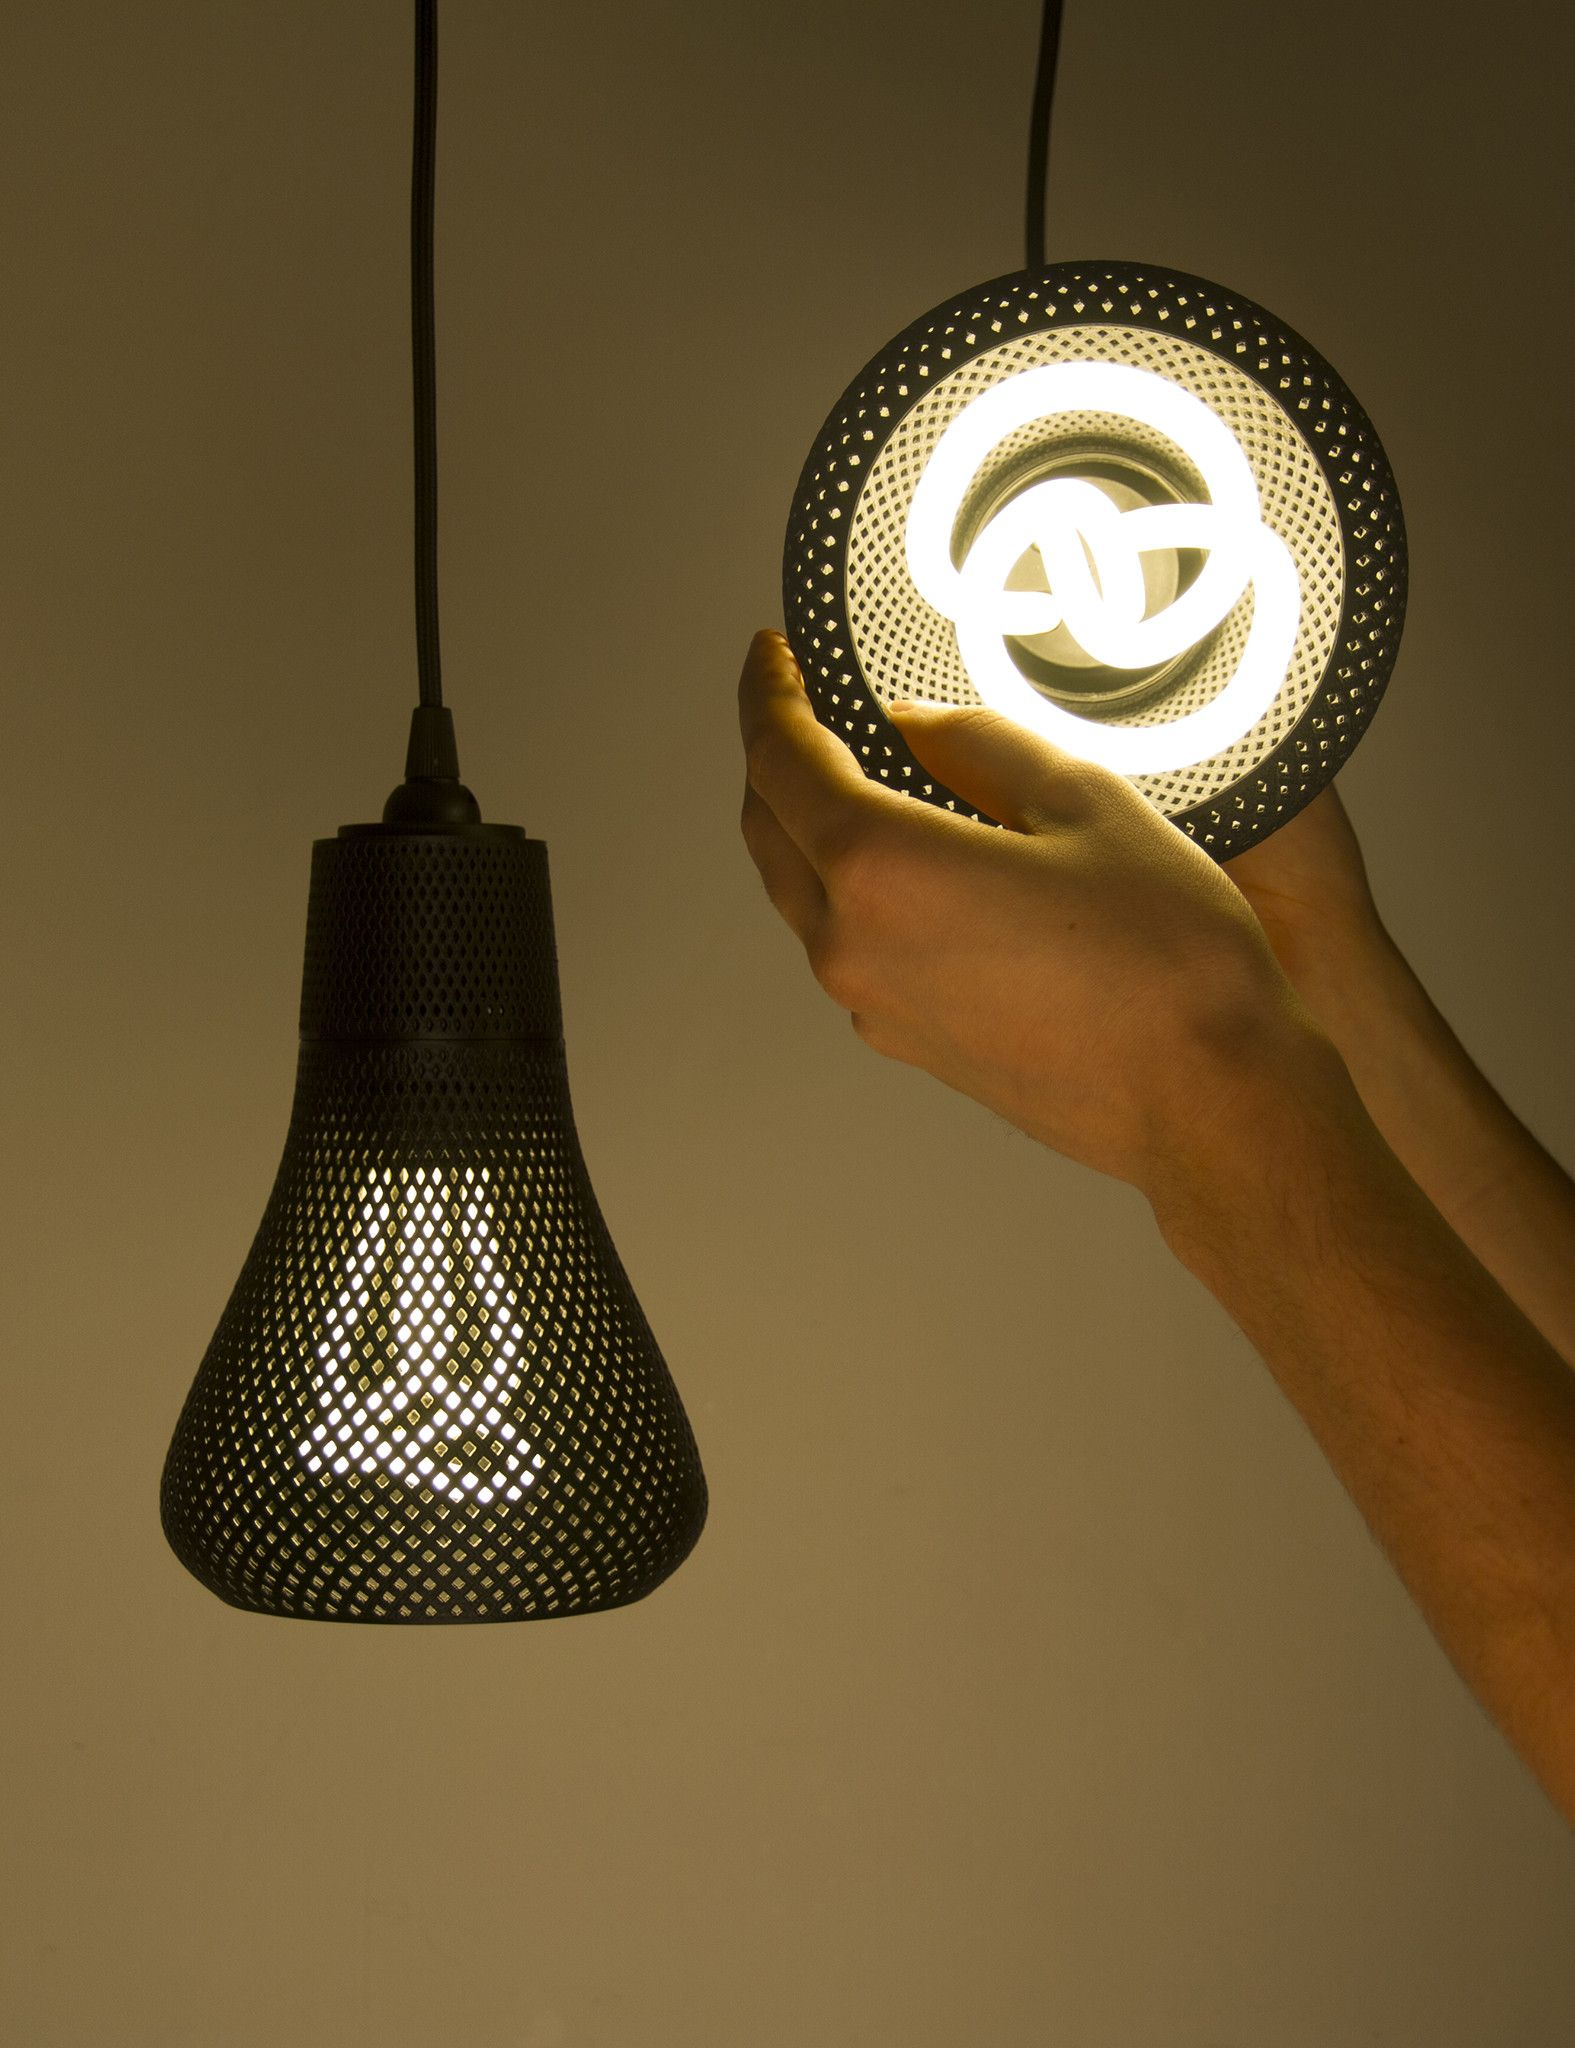 Kayan 3d Printed Lamp Shade Formaliz3d With Plumen 001 Bulb